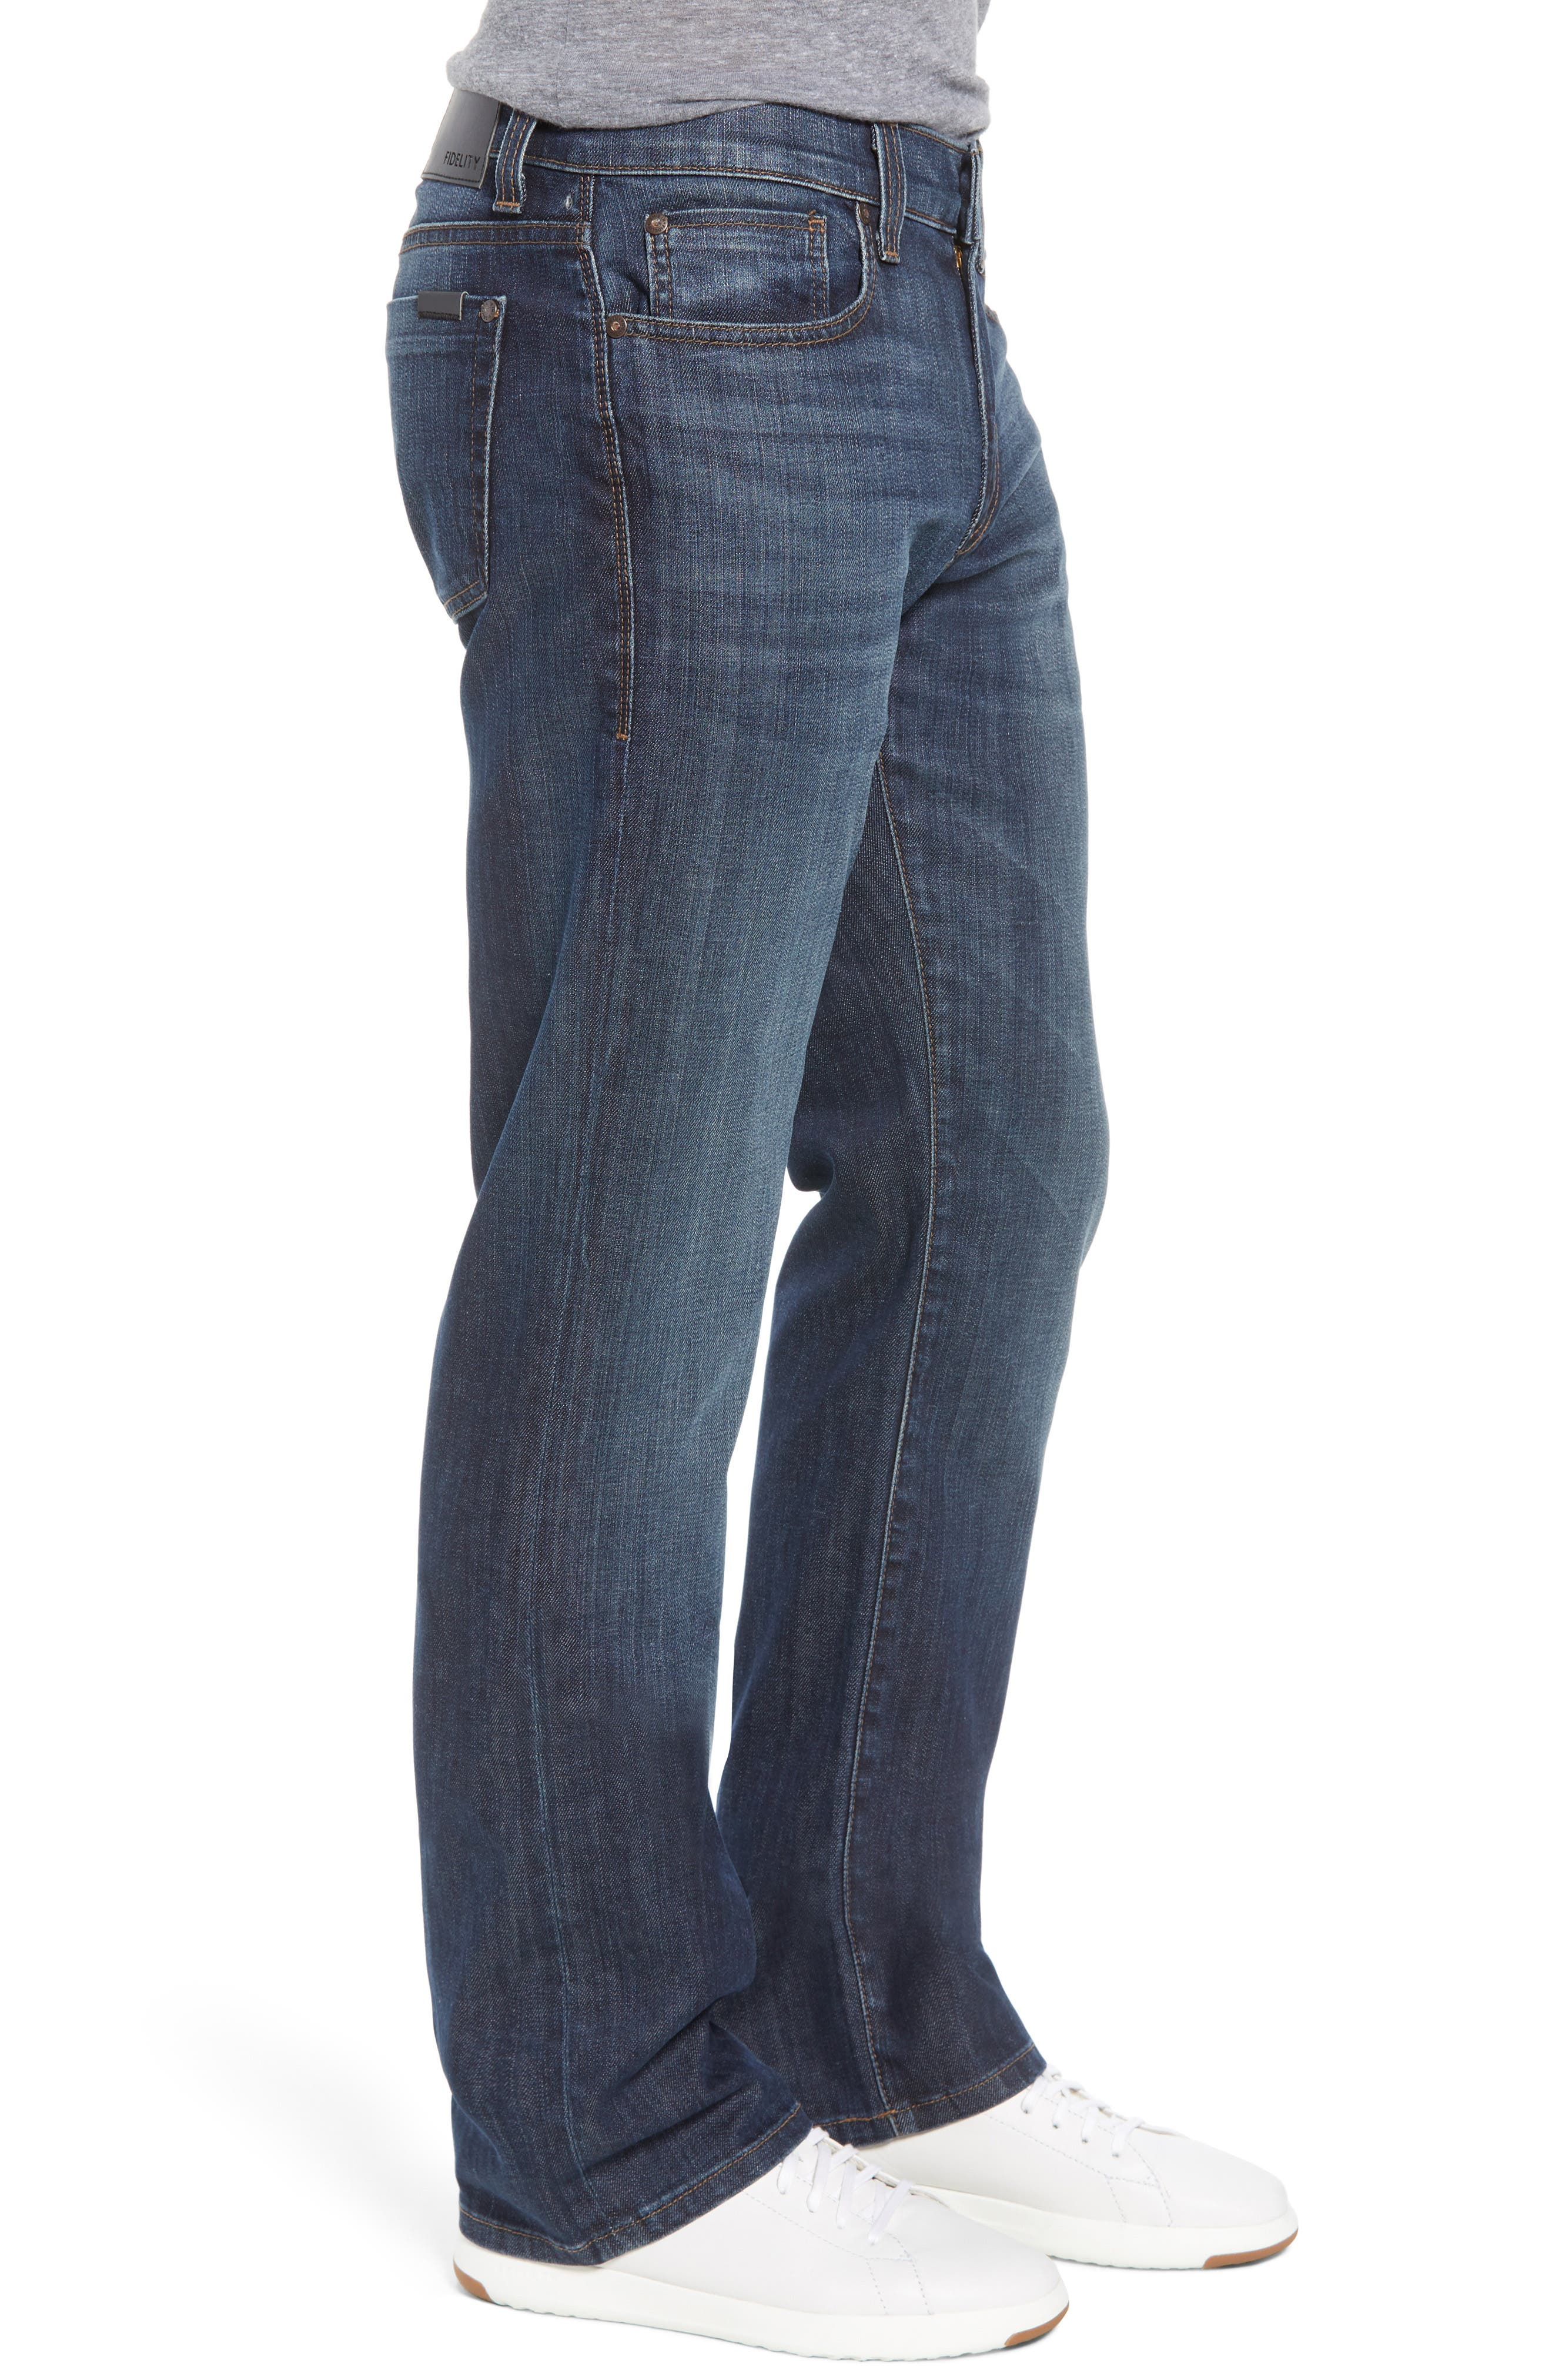 50-11 Relaxed Fit Jeans,                             Alternate thumbnail 3, color,                             Winwood Vintage